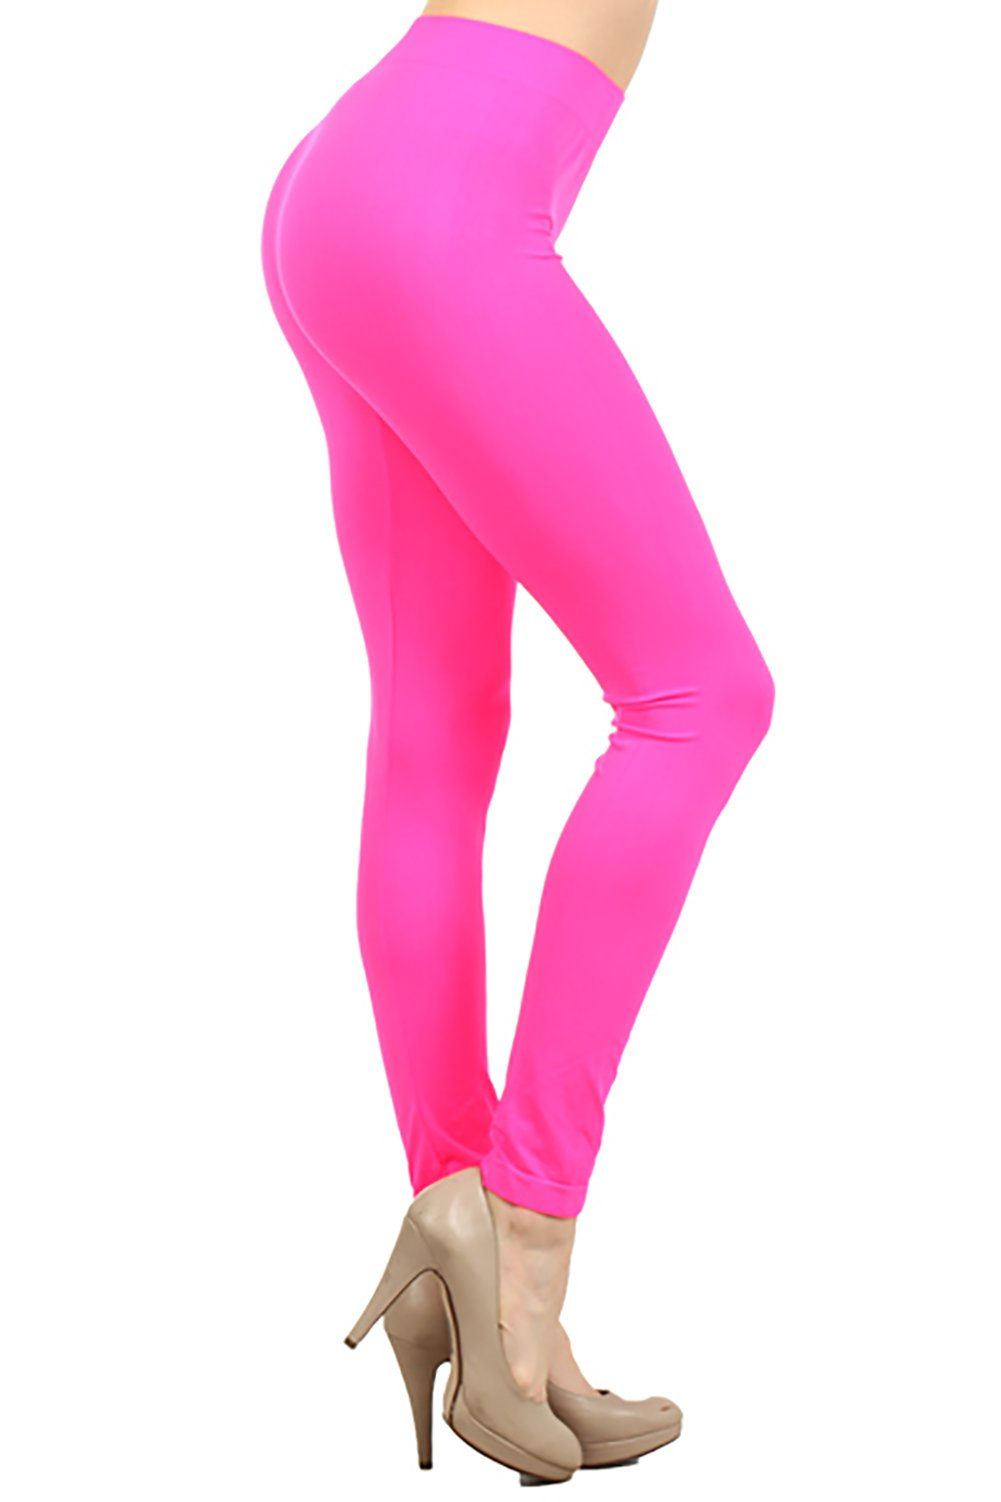 NeonNation Colored Seamless Leggings Athletic Pants Costume Party Tights Quality (Neon Pink) by NeonNation